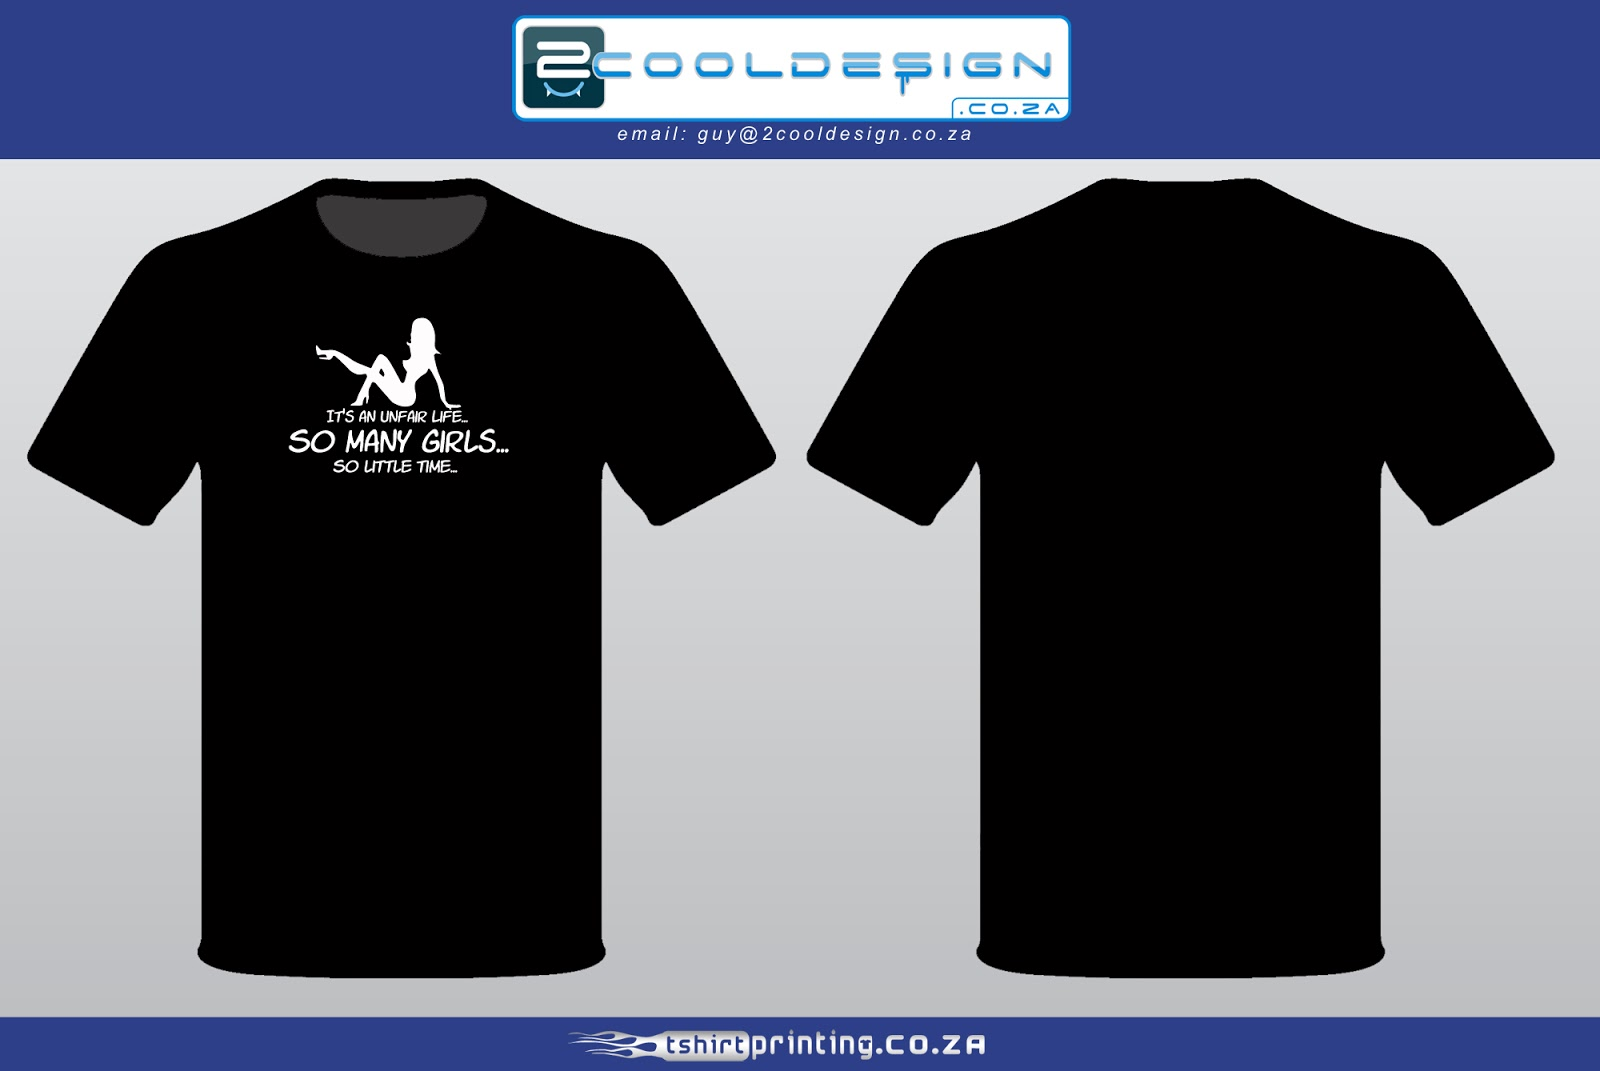 the coolest t shirt printing company in south africa